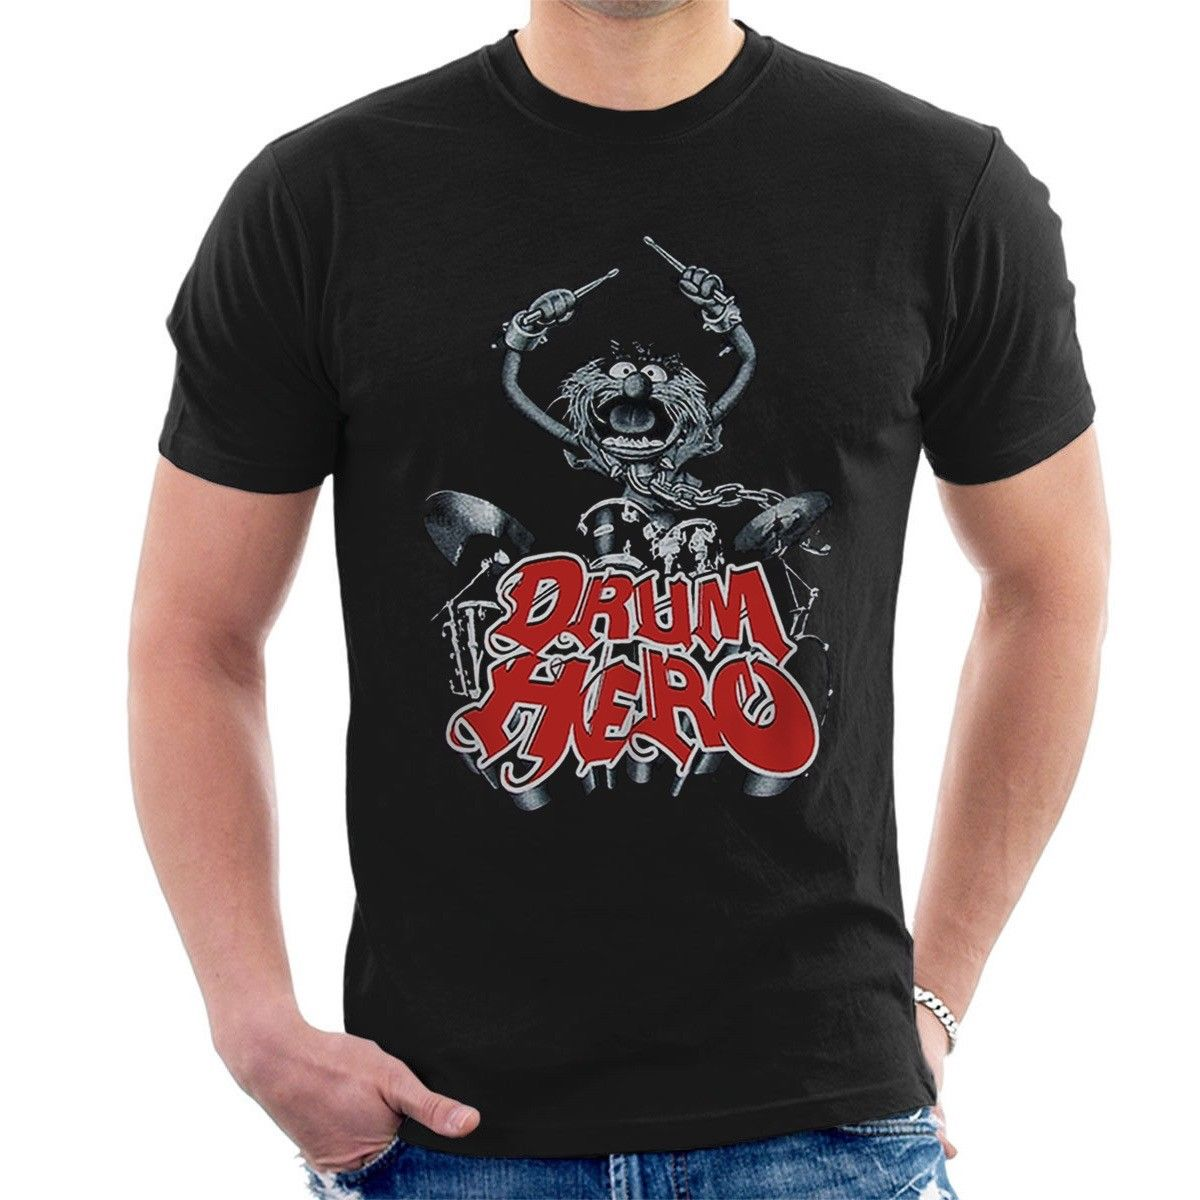 DRUM HERO   T  -  SHIRT   animal drummer show muppet inspired paiste zildjian tee A01 New   T     Shirts   Funny Tops Tee New free shipping